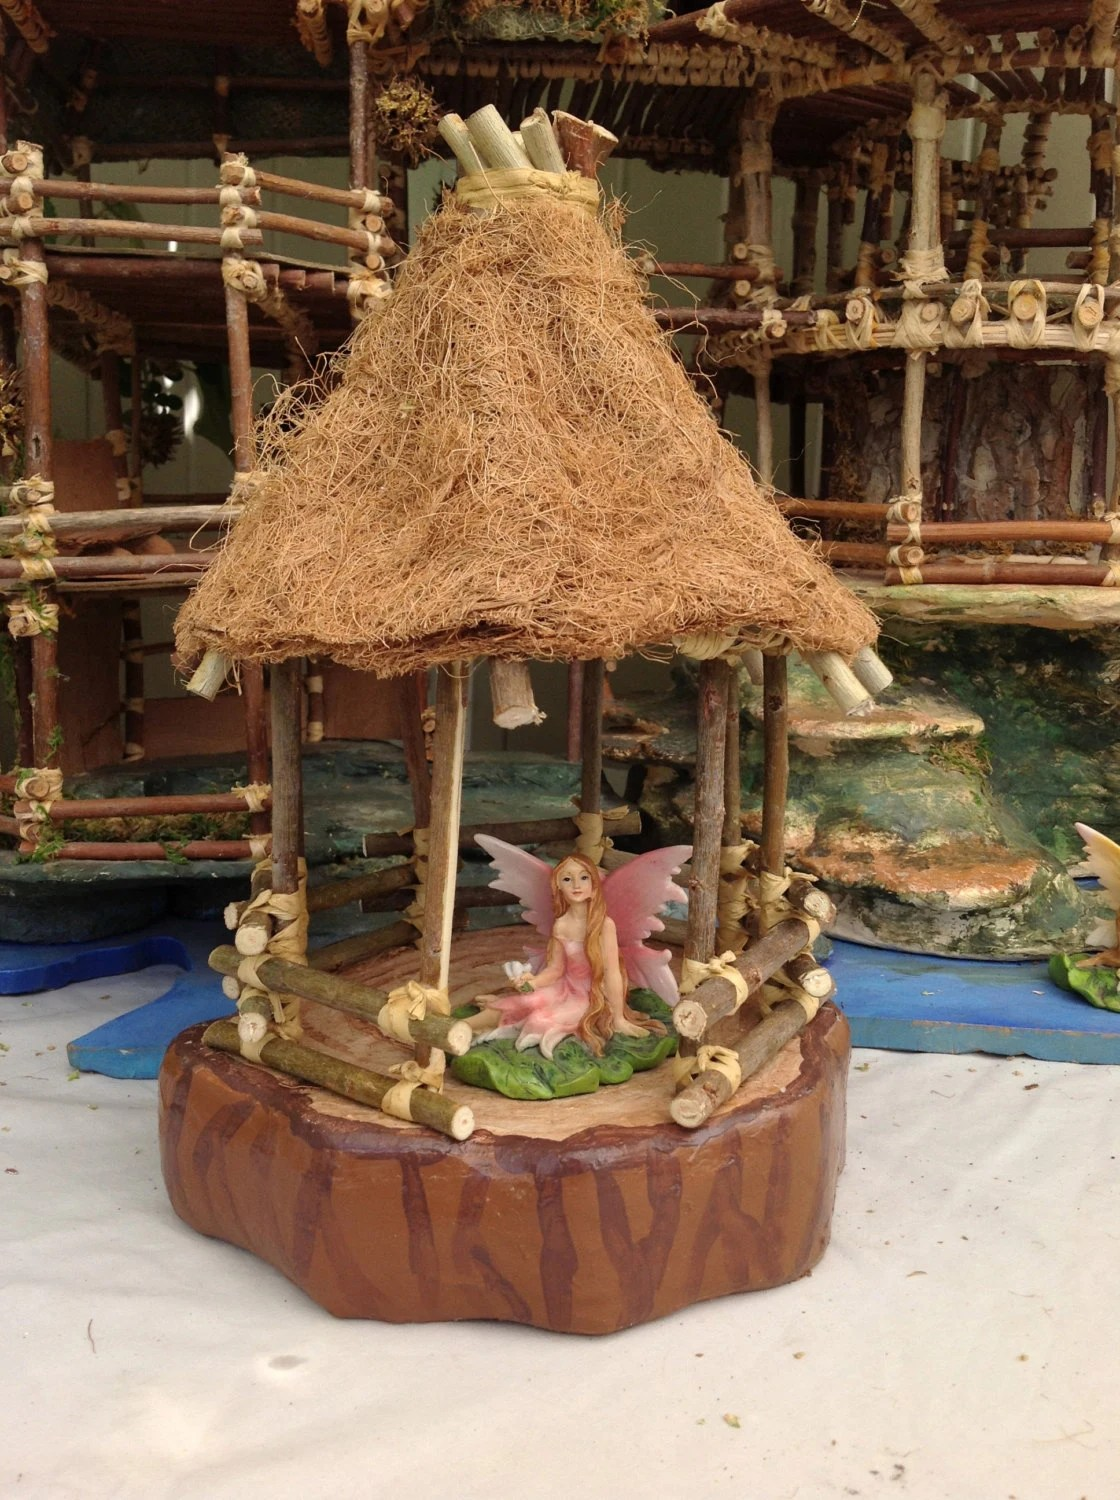 Gazebo Fairy House Kit 8 By 8 By 12 Inches By Fairyhousemagic